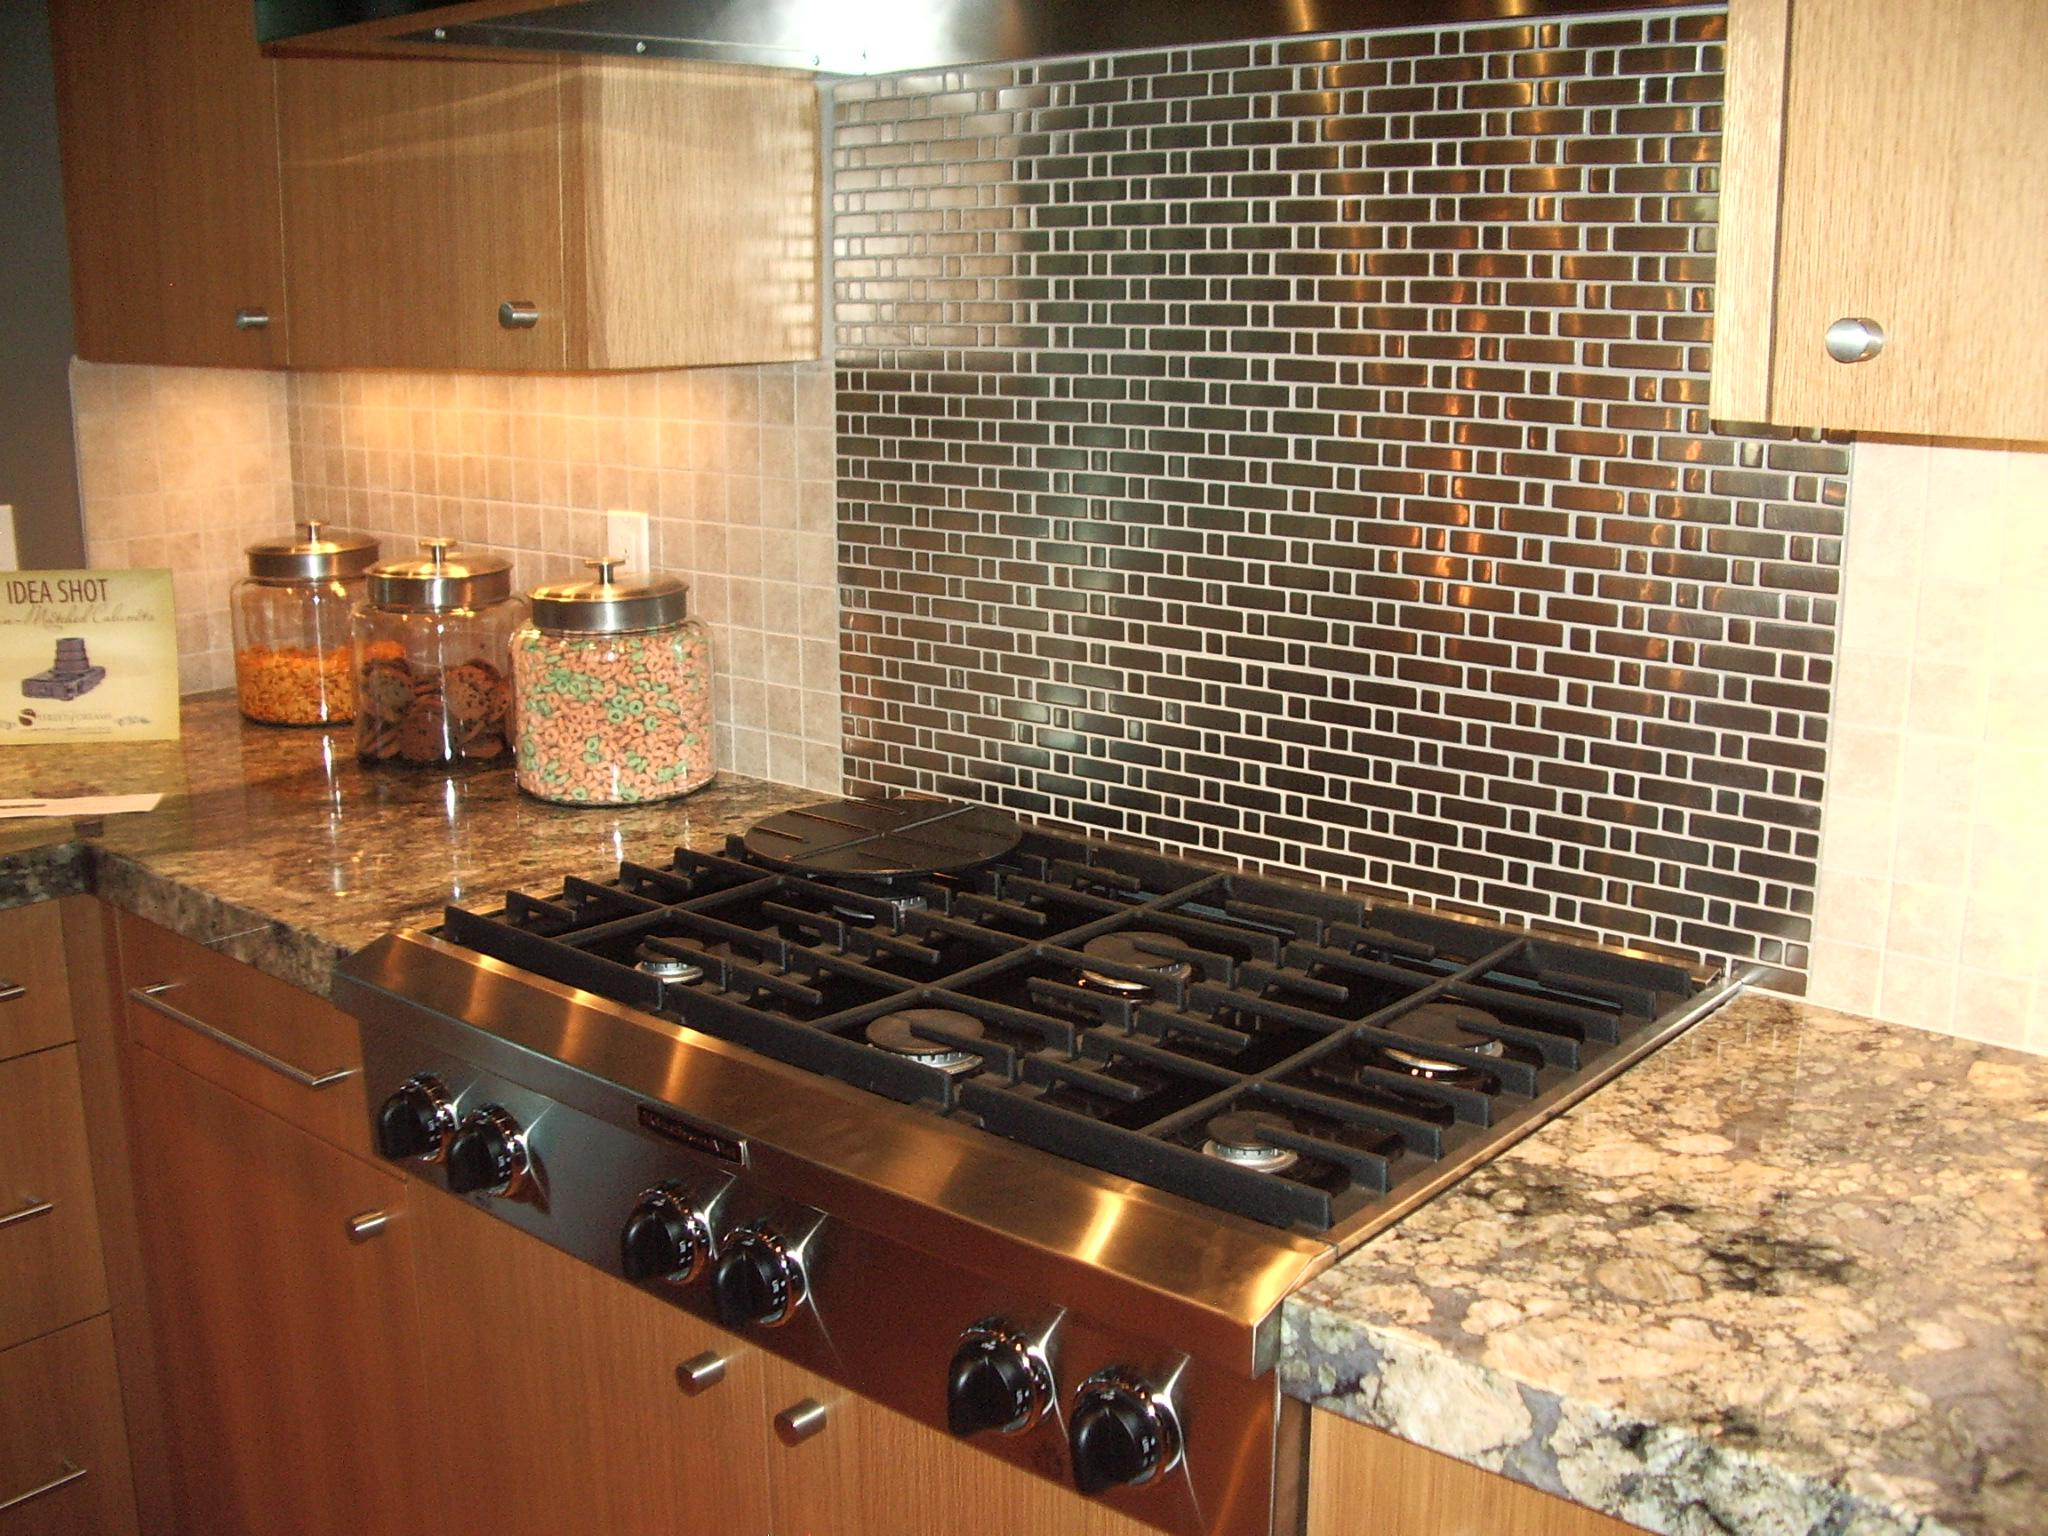 Image of: diy stove backsplash ideas